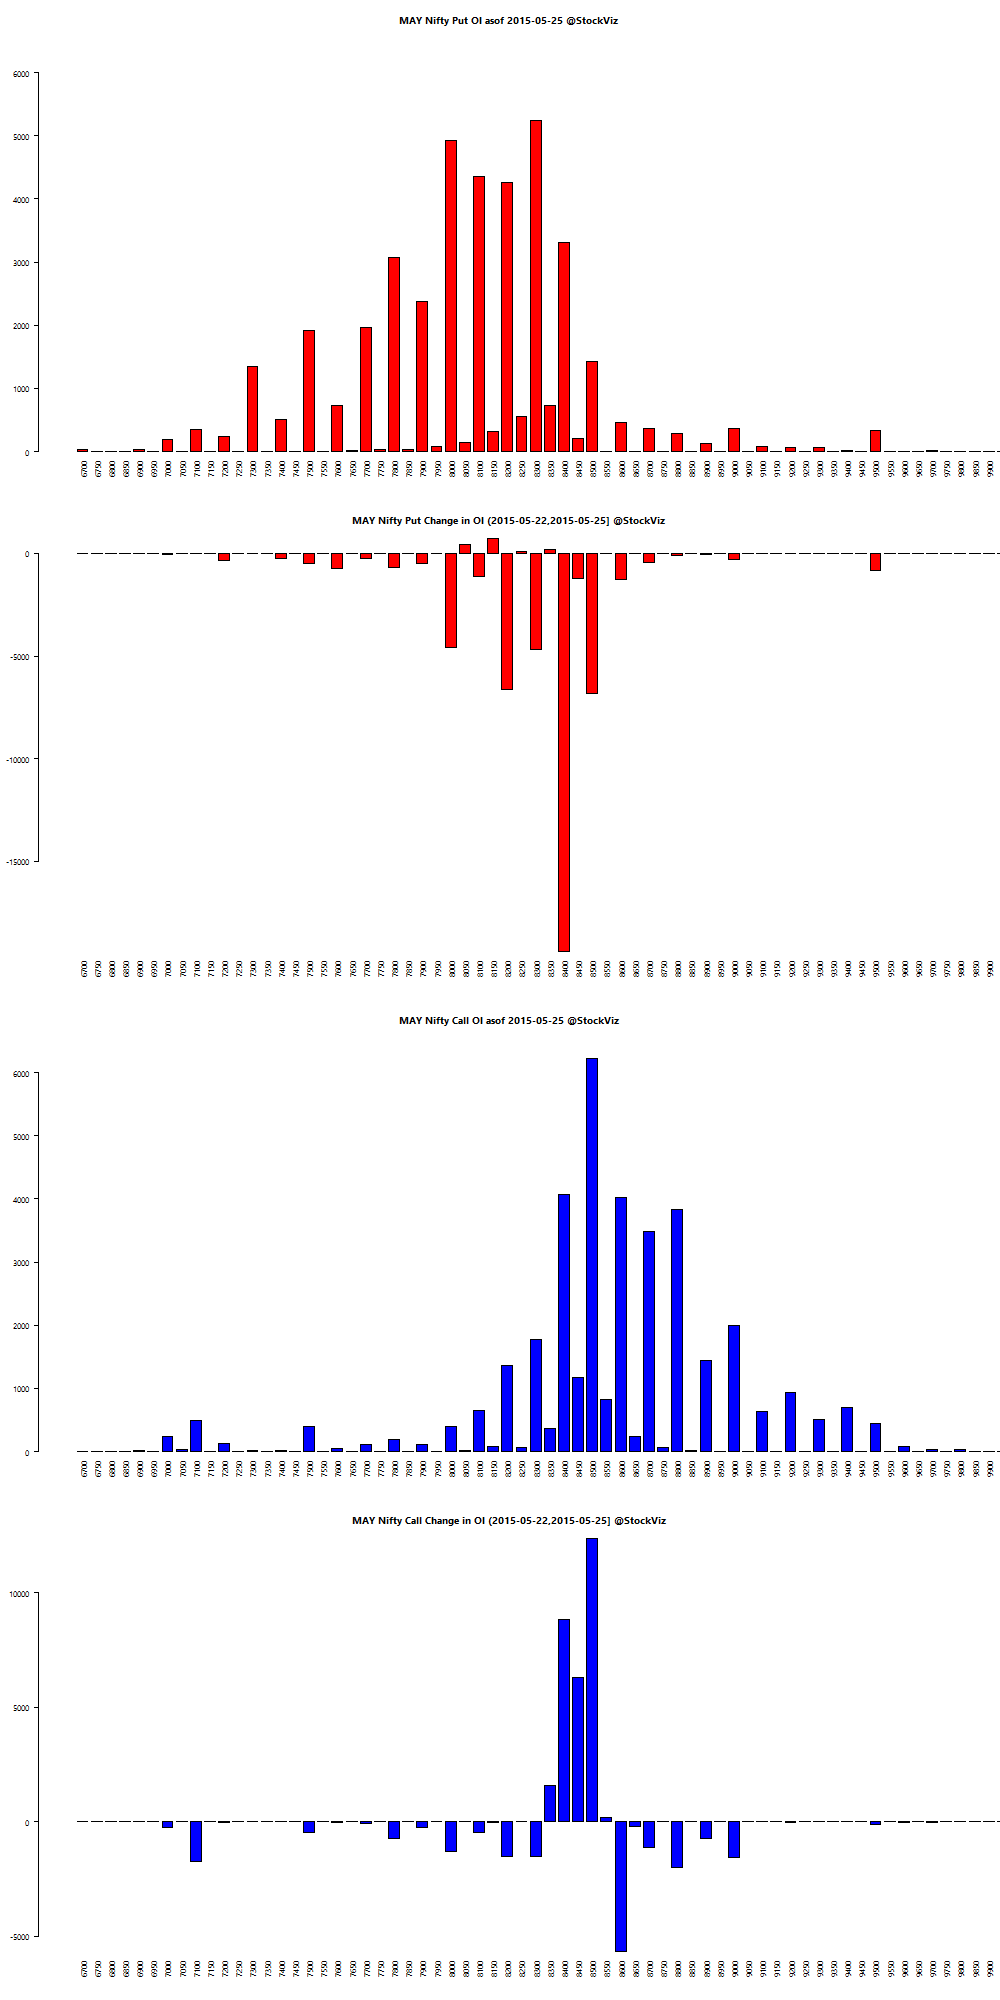 MAY NIFTY OI chart